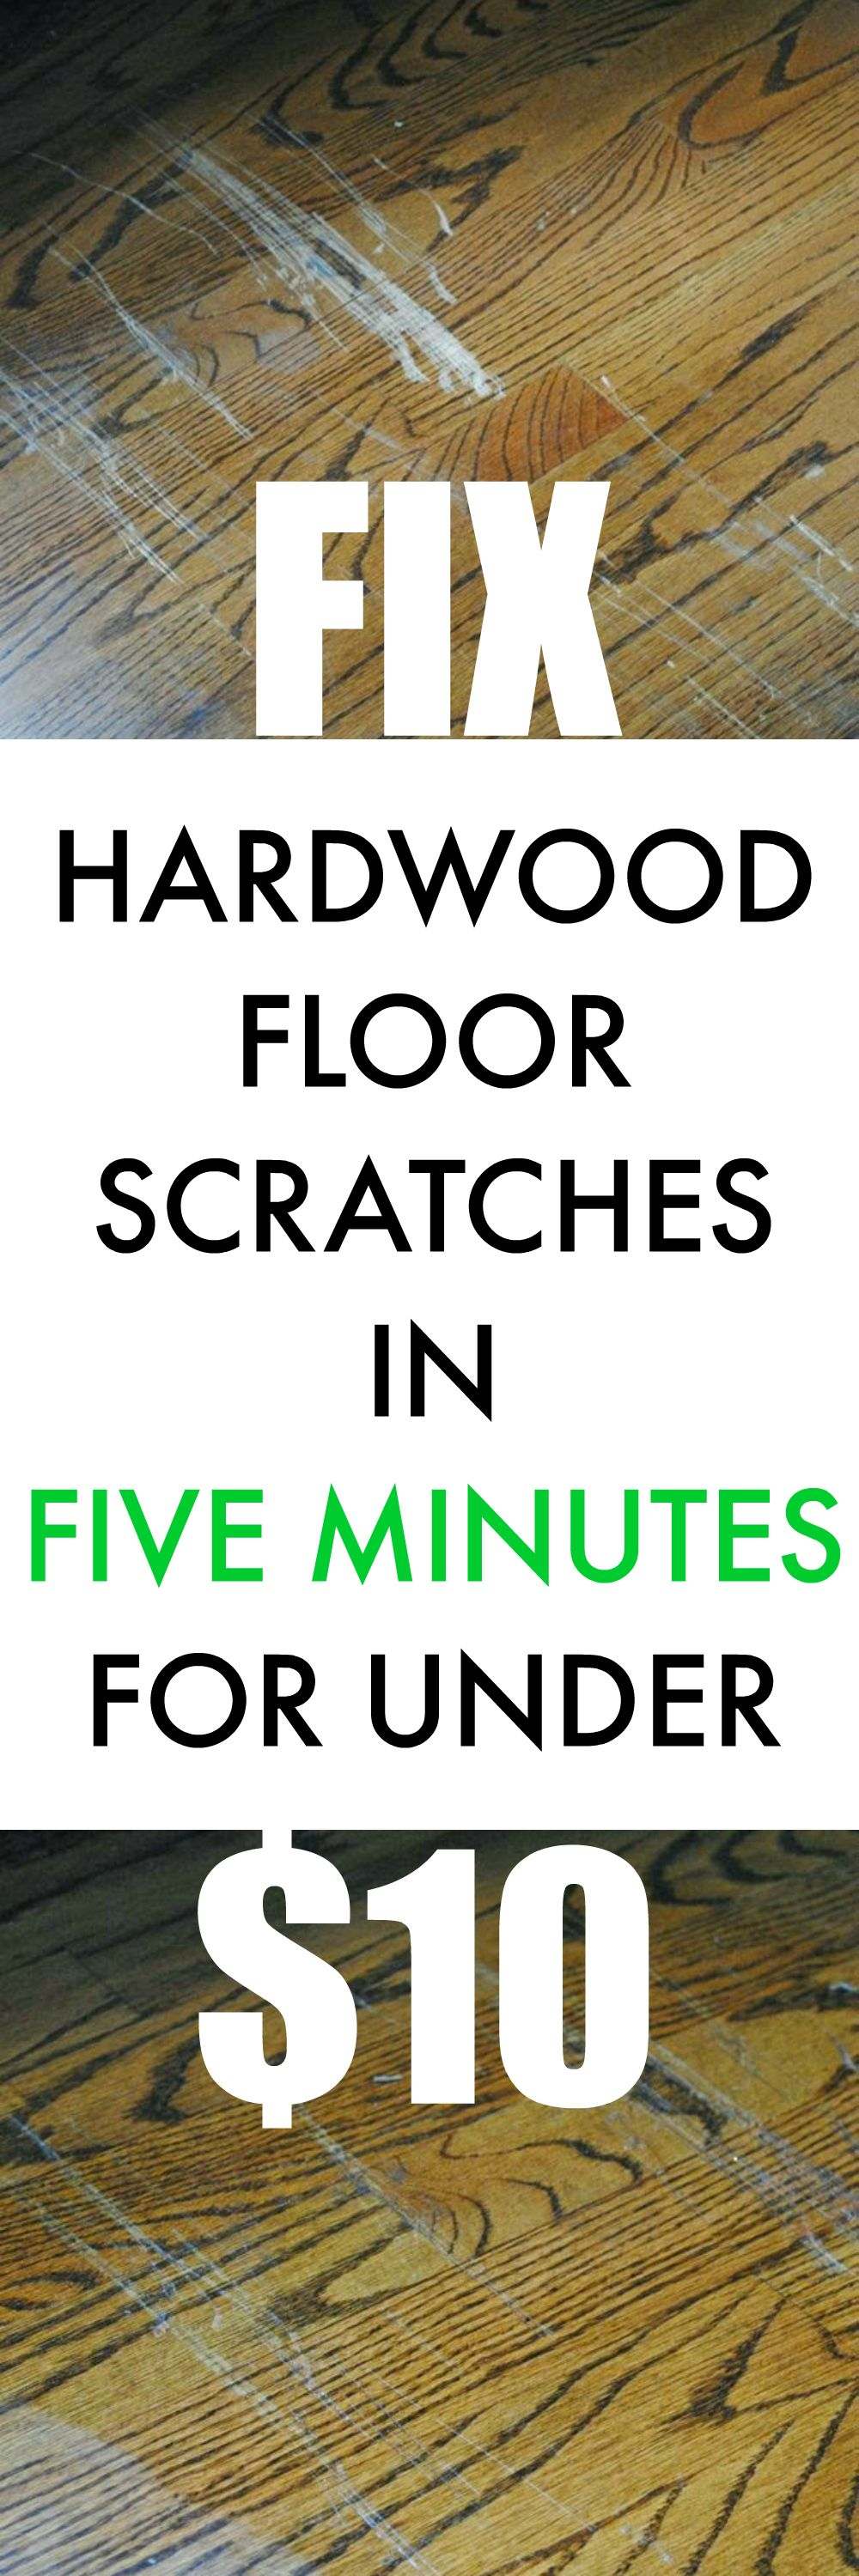 Remove Scratch From Hardwood Floor Part - 38: How To Fix Hardwood Floor Scratches In About Five Minutes For Under $10!